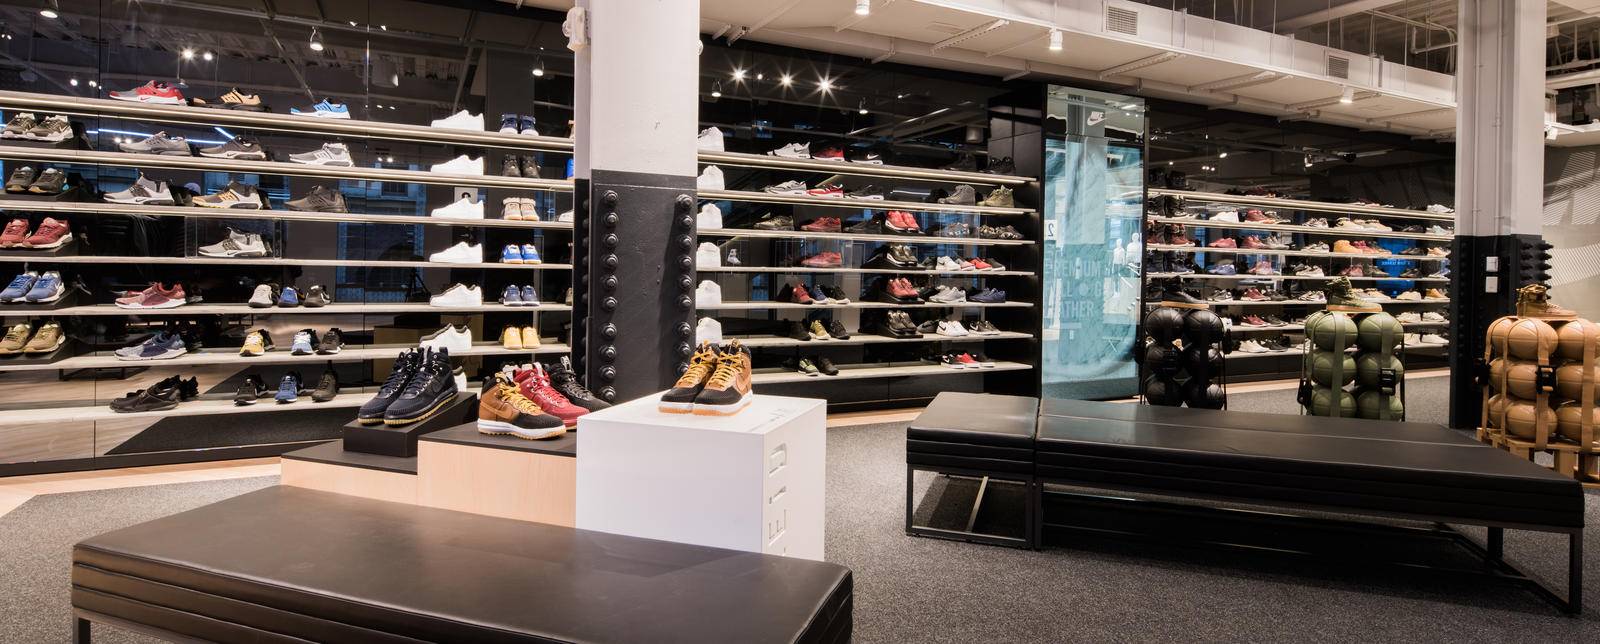 First Look Inside Nike Soho Nike News